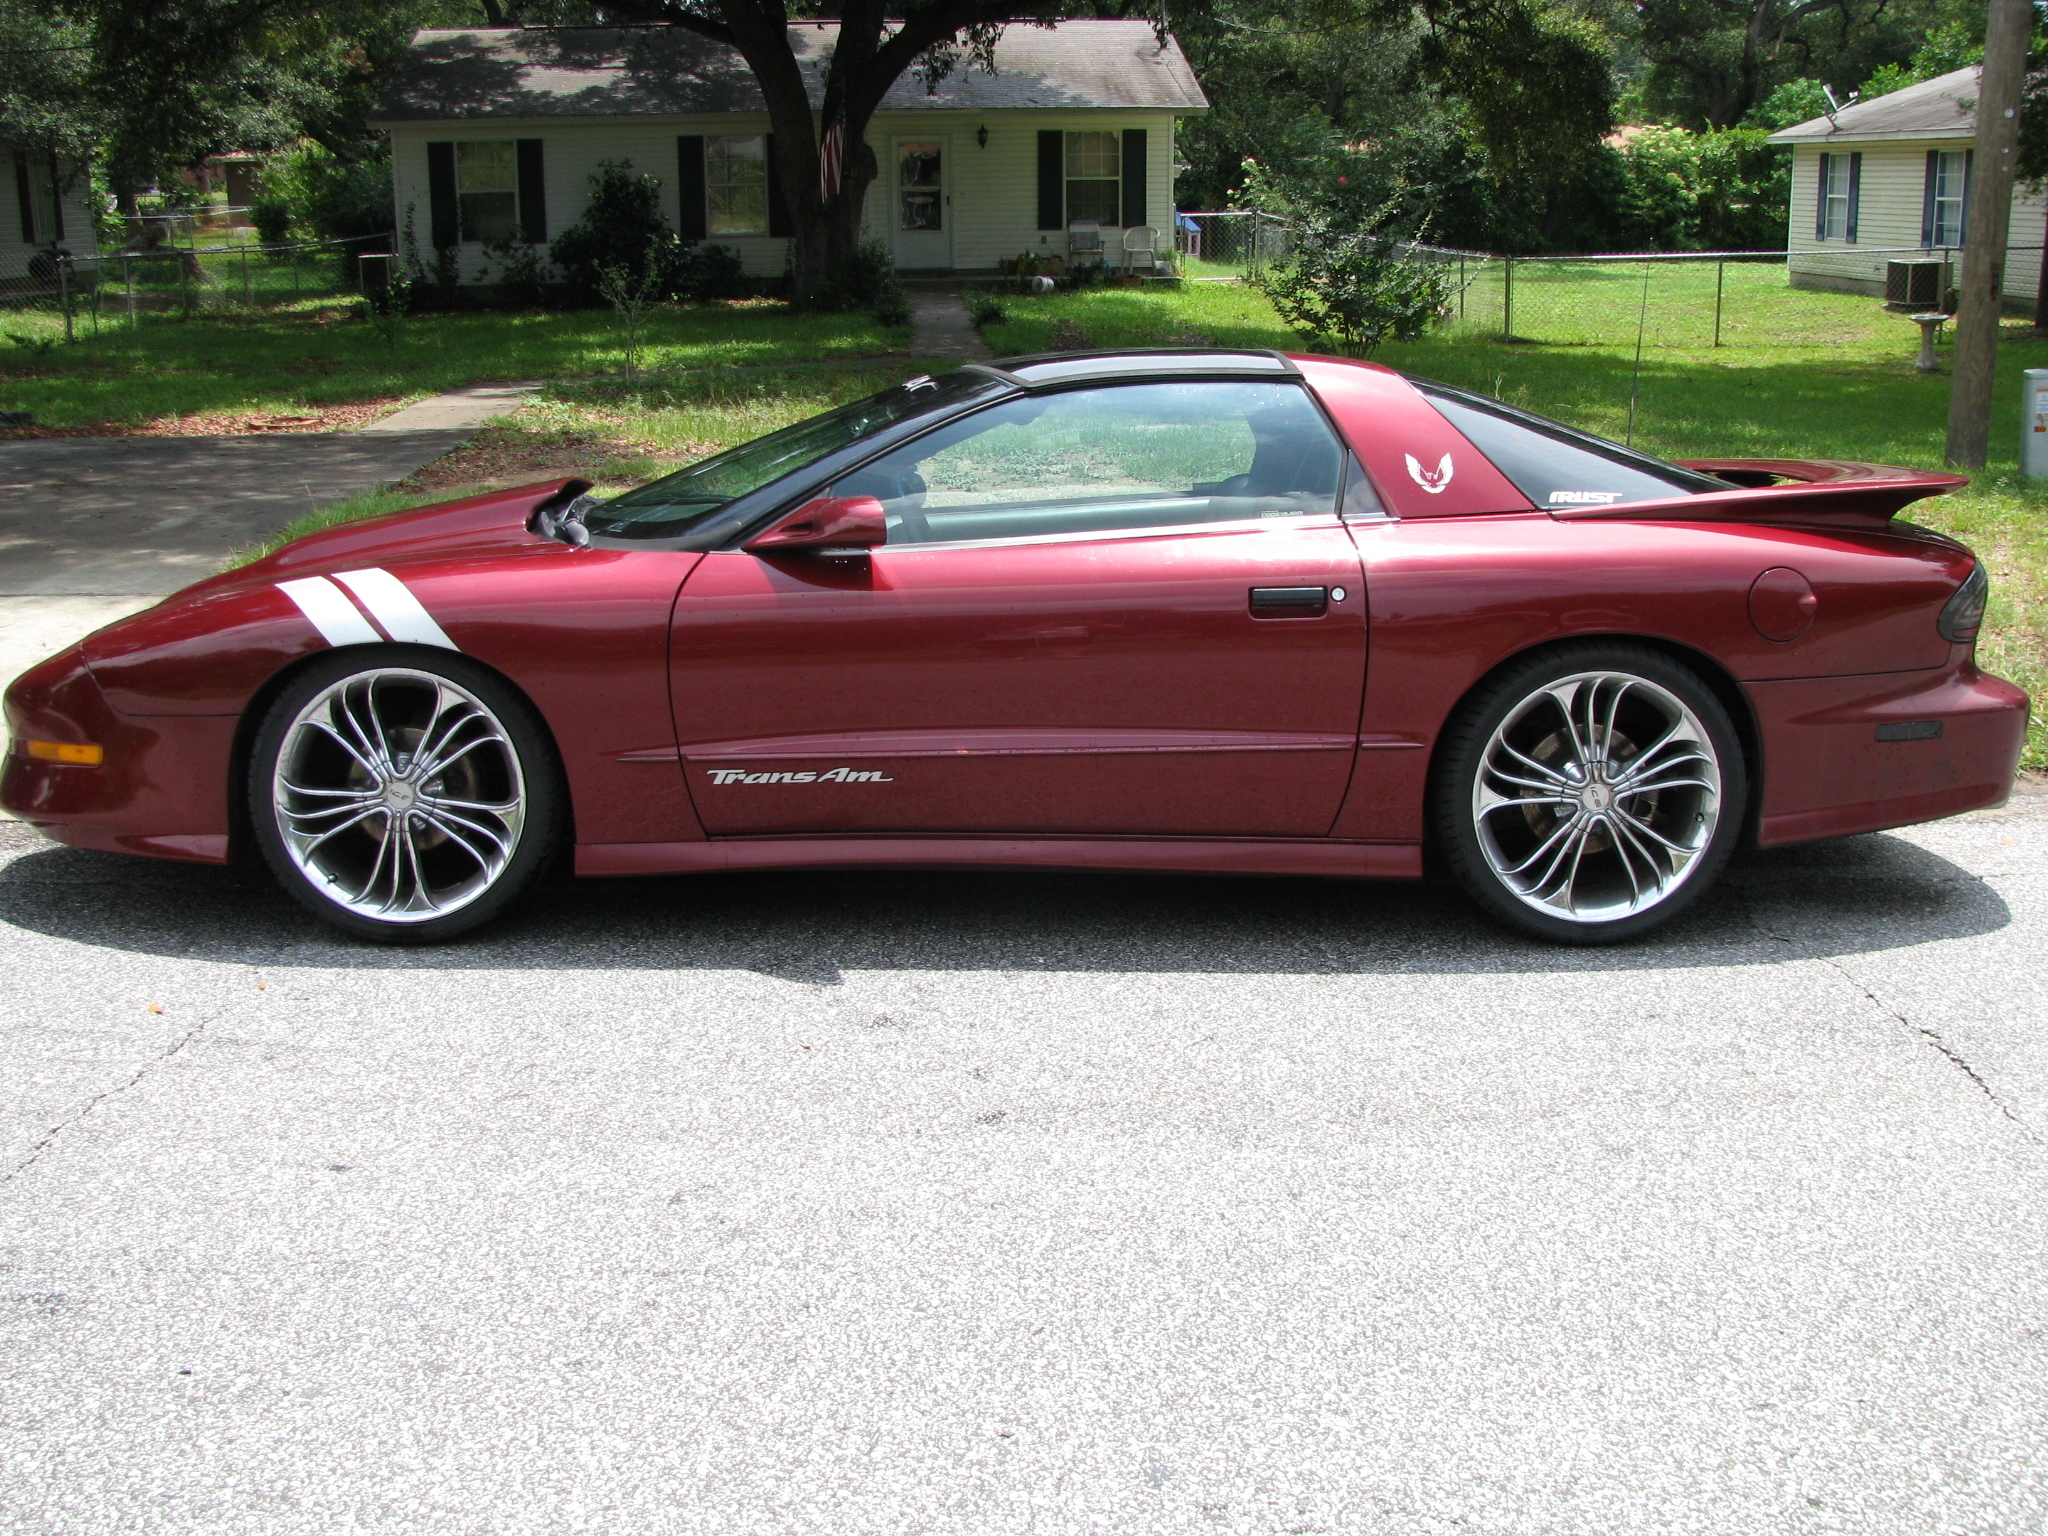 What Transmission Do I Have >> JustinFTW 1995 Pontiac Trans Am Specs, Photos, Modification Info at CarDomain